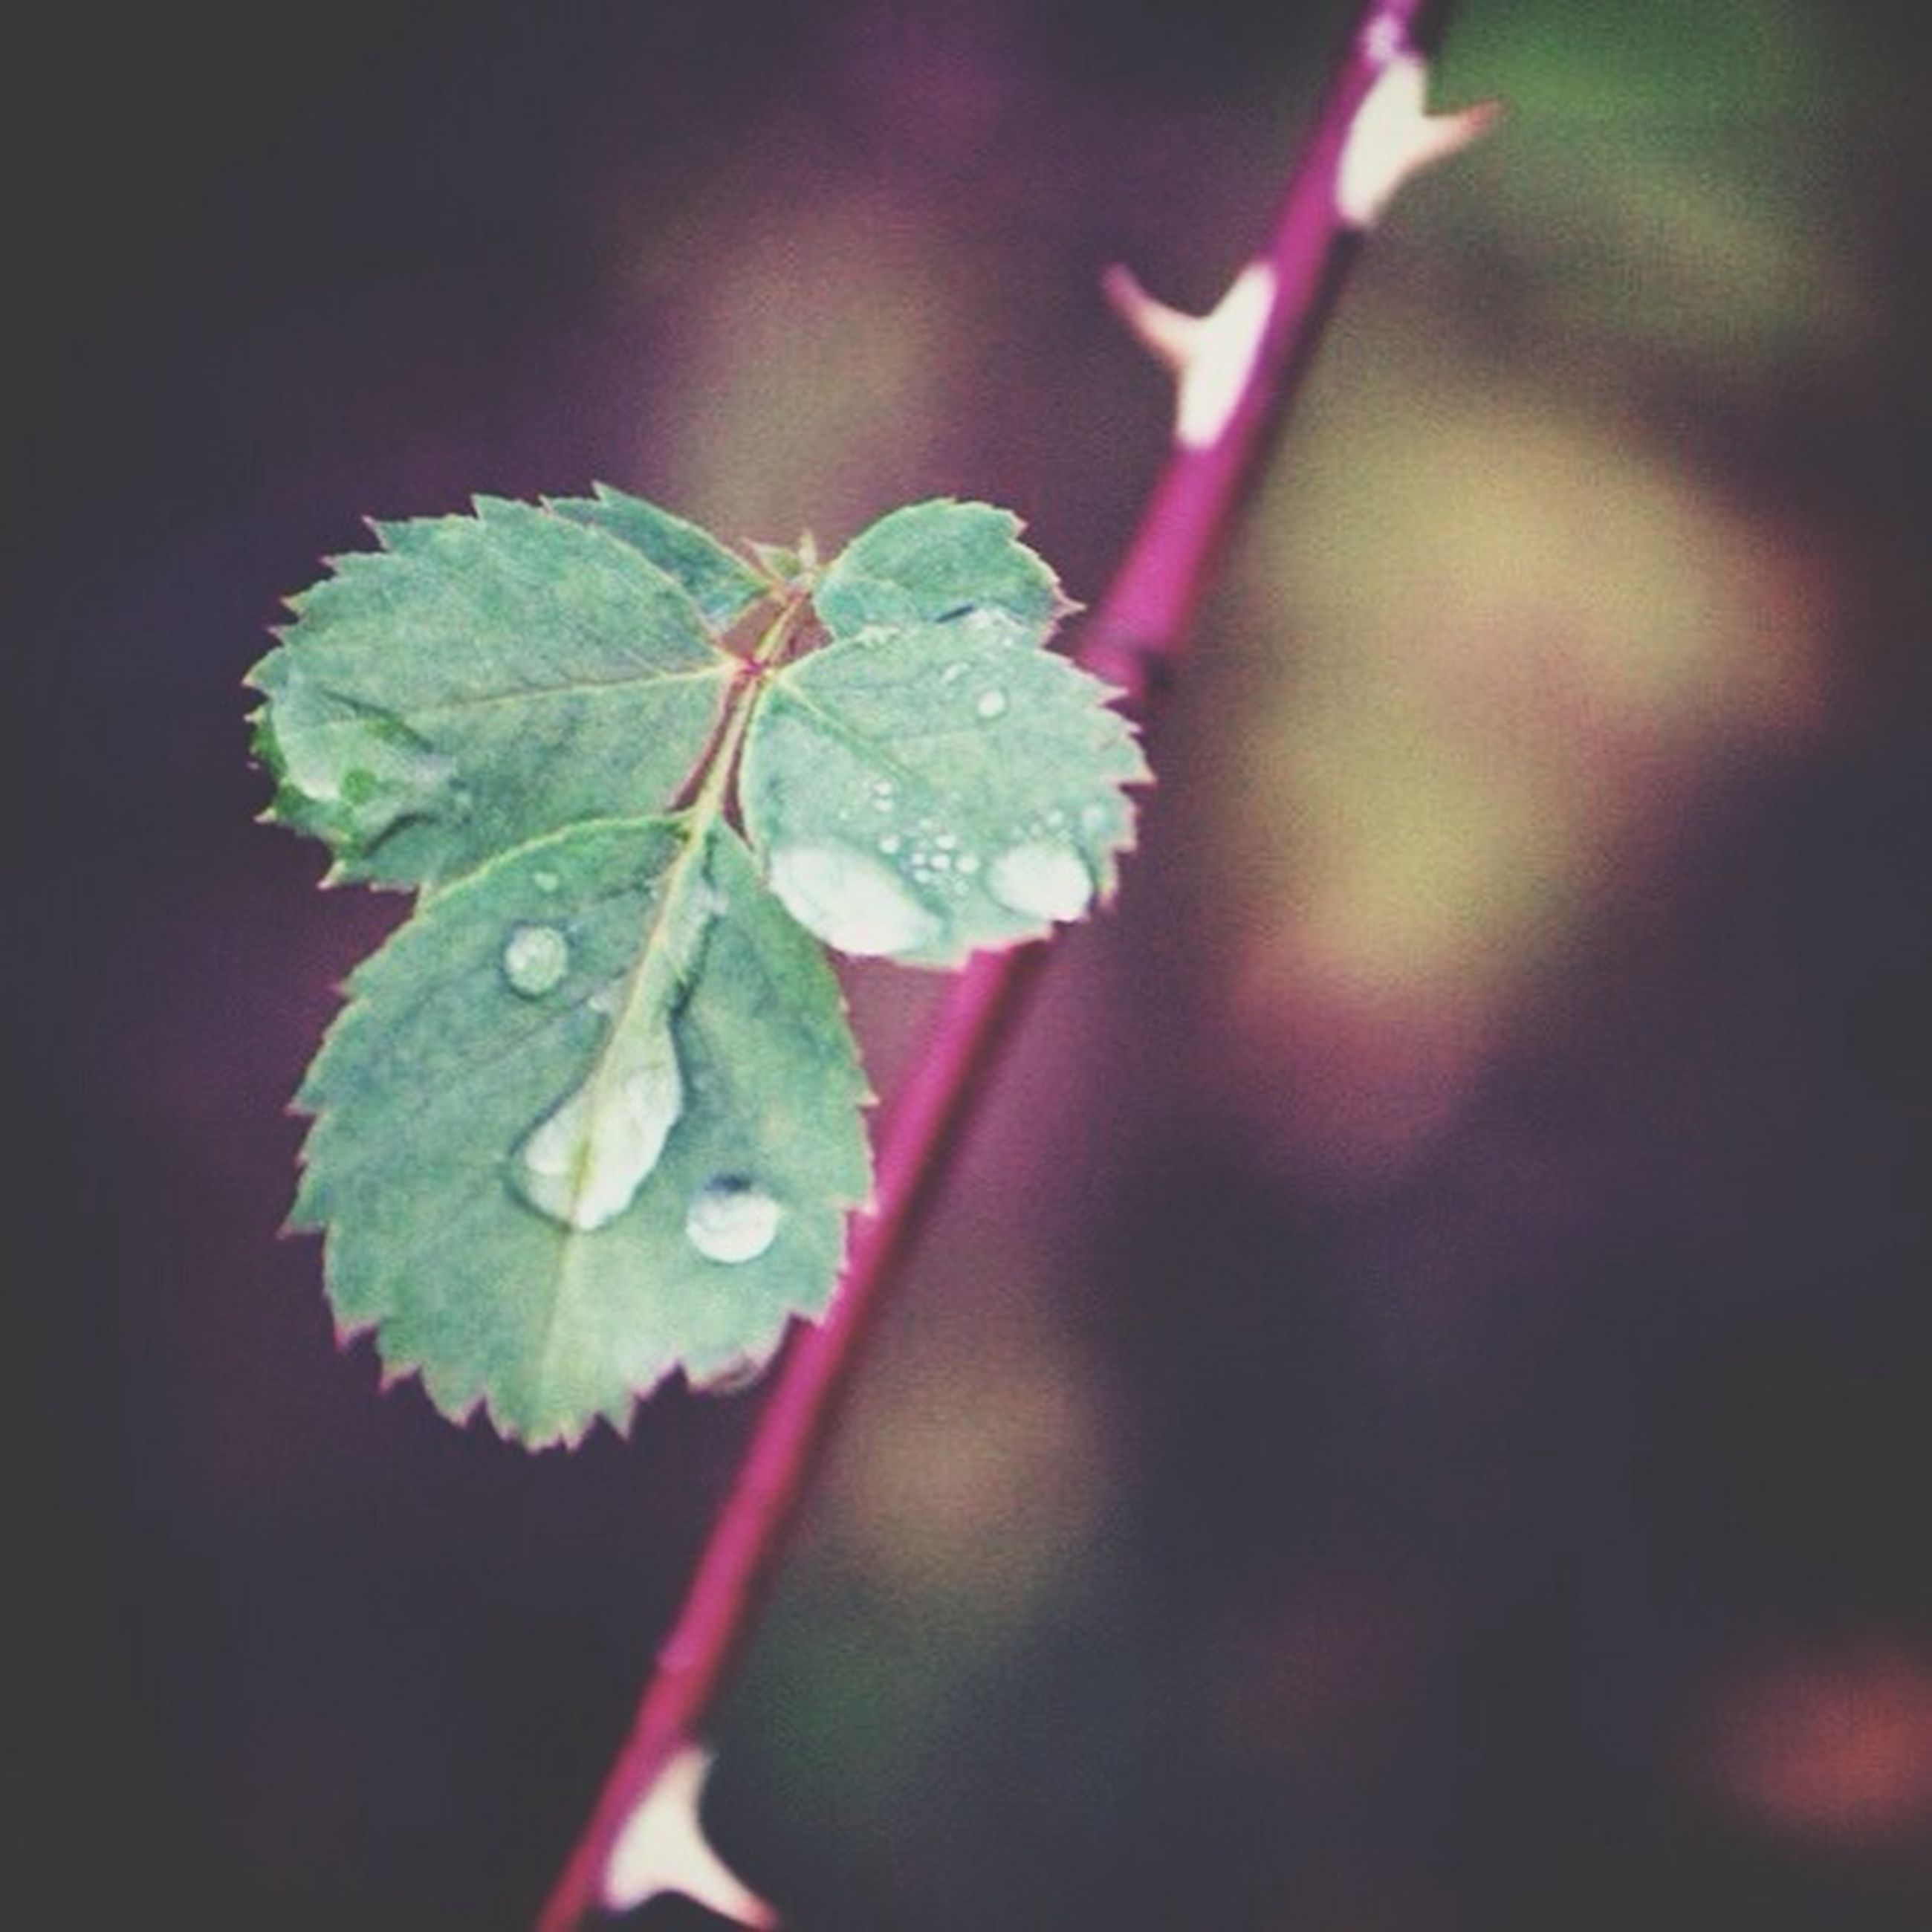 growth, drop, close-up, leaf, freshness, plant, water, wet, focus on foreground, nature, green color, beauty in nature, fragility, selective focus, dew, stem, flower, raindrop, no people, season